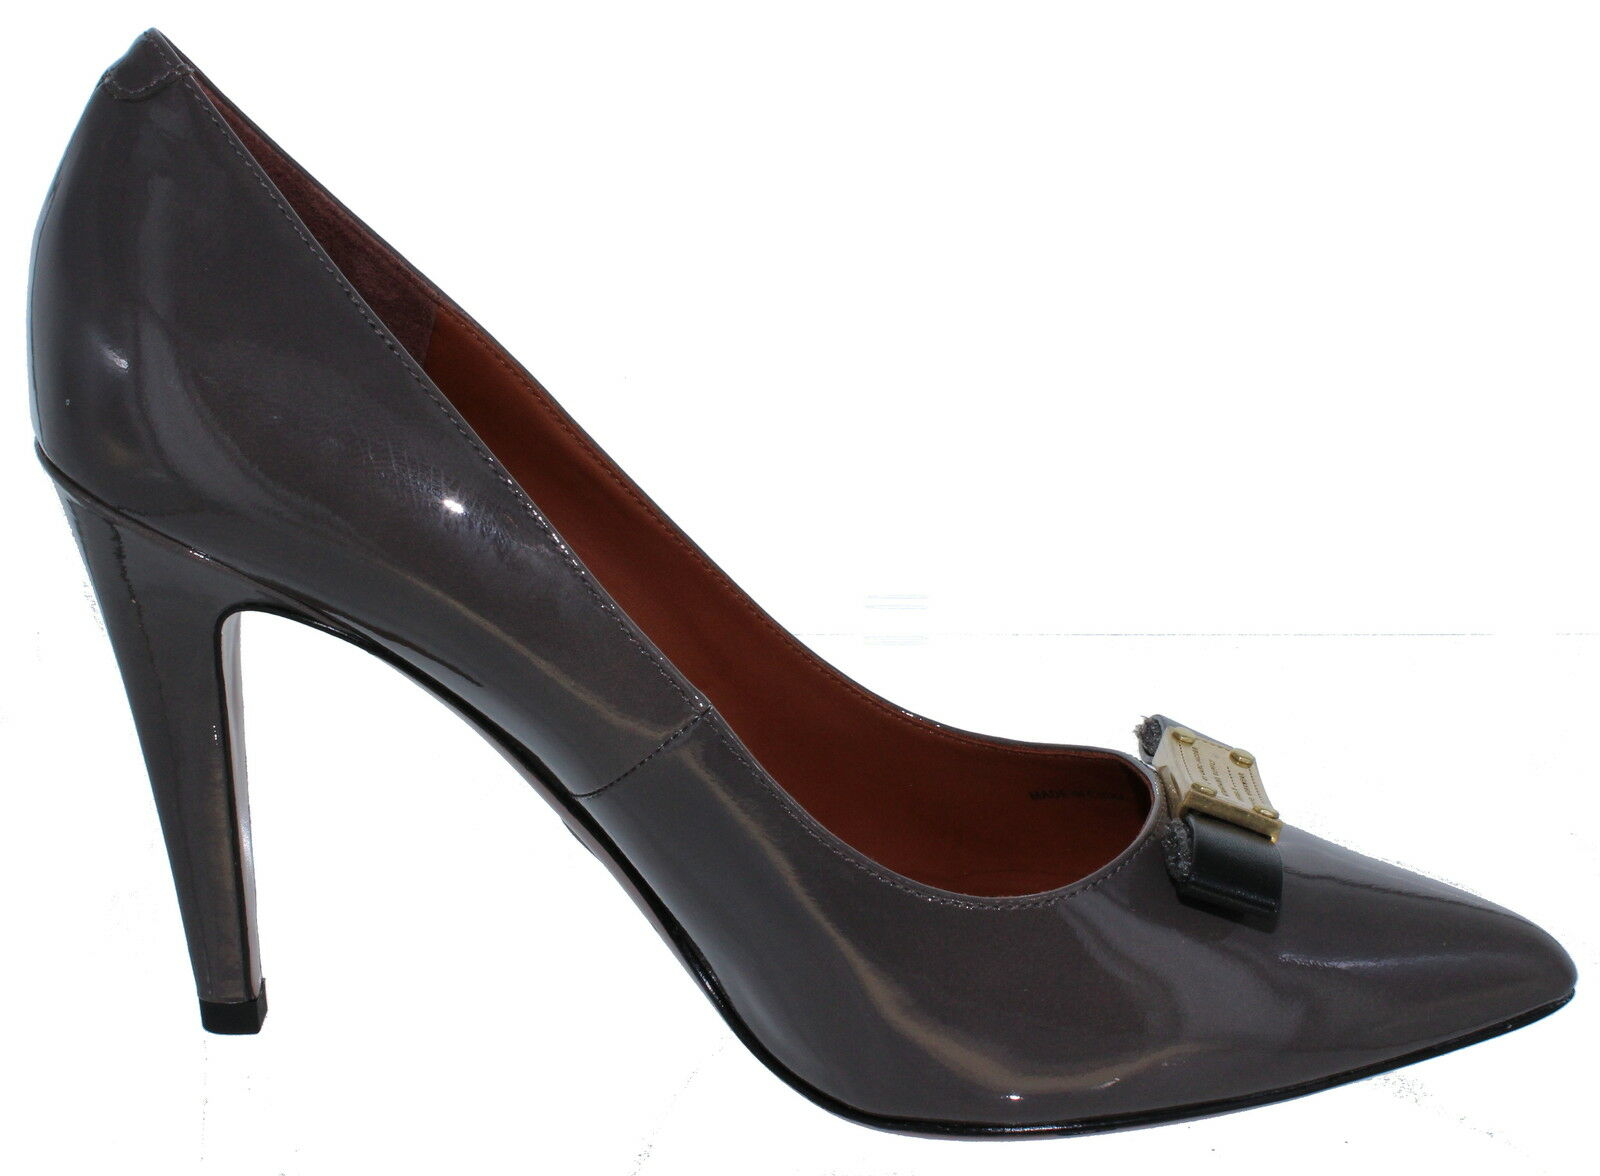 Marc By Marc Jacobs Para Mujer Mujer Mujer Frontal Arco Placa Bombas-Talla 8.5  60% de descuento